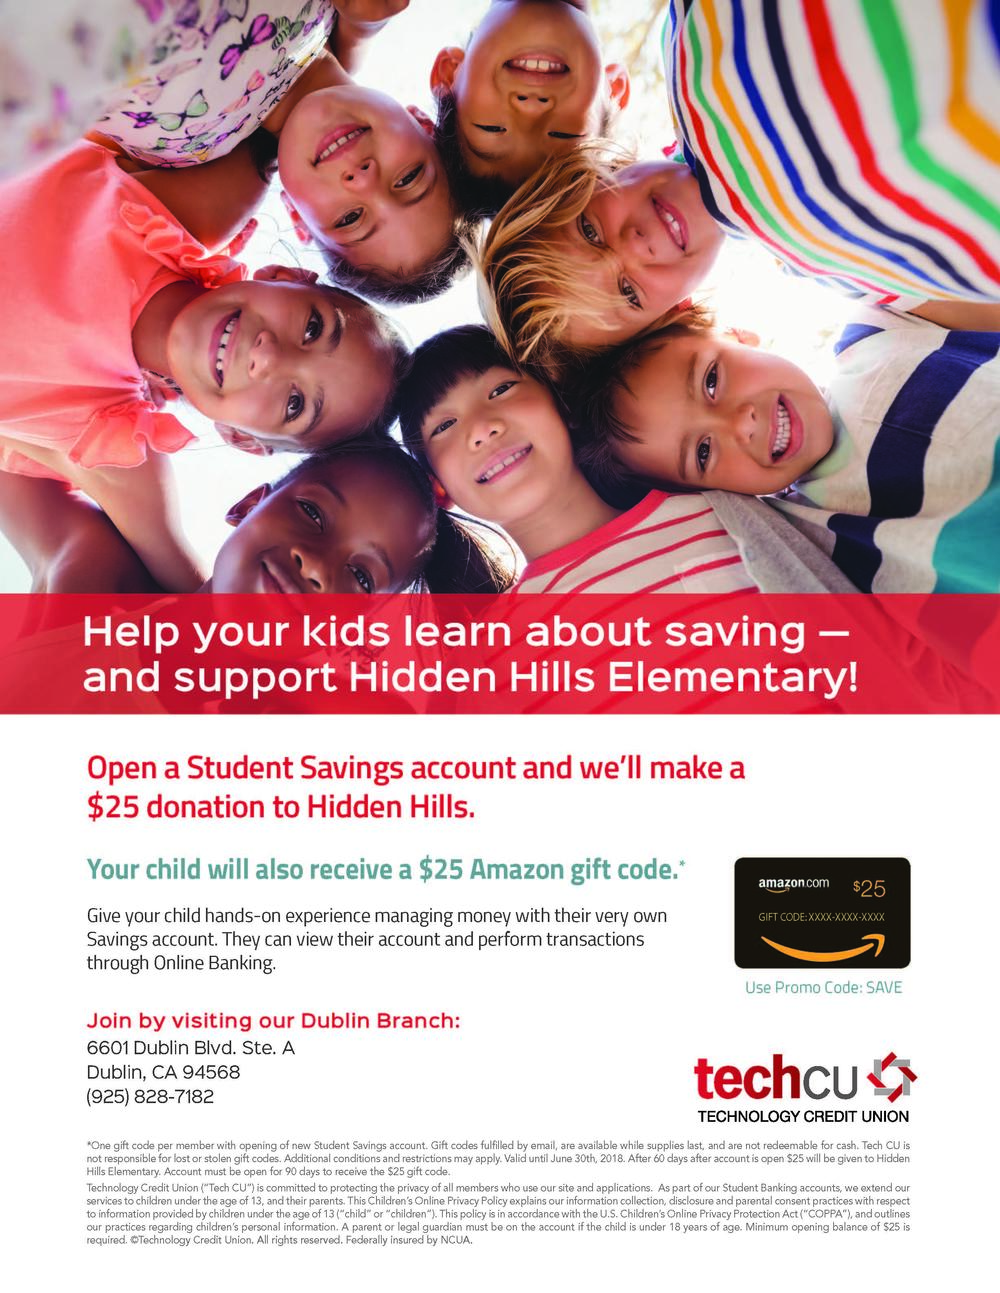 TechCU Flyer on Student Account